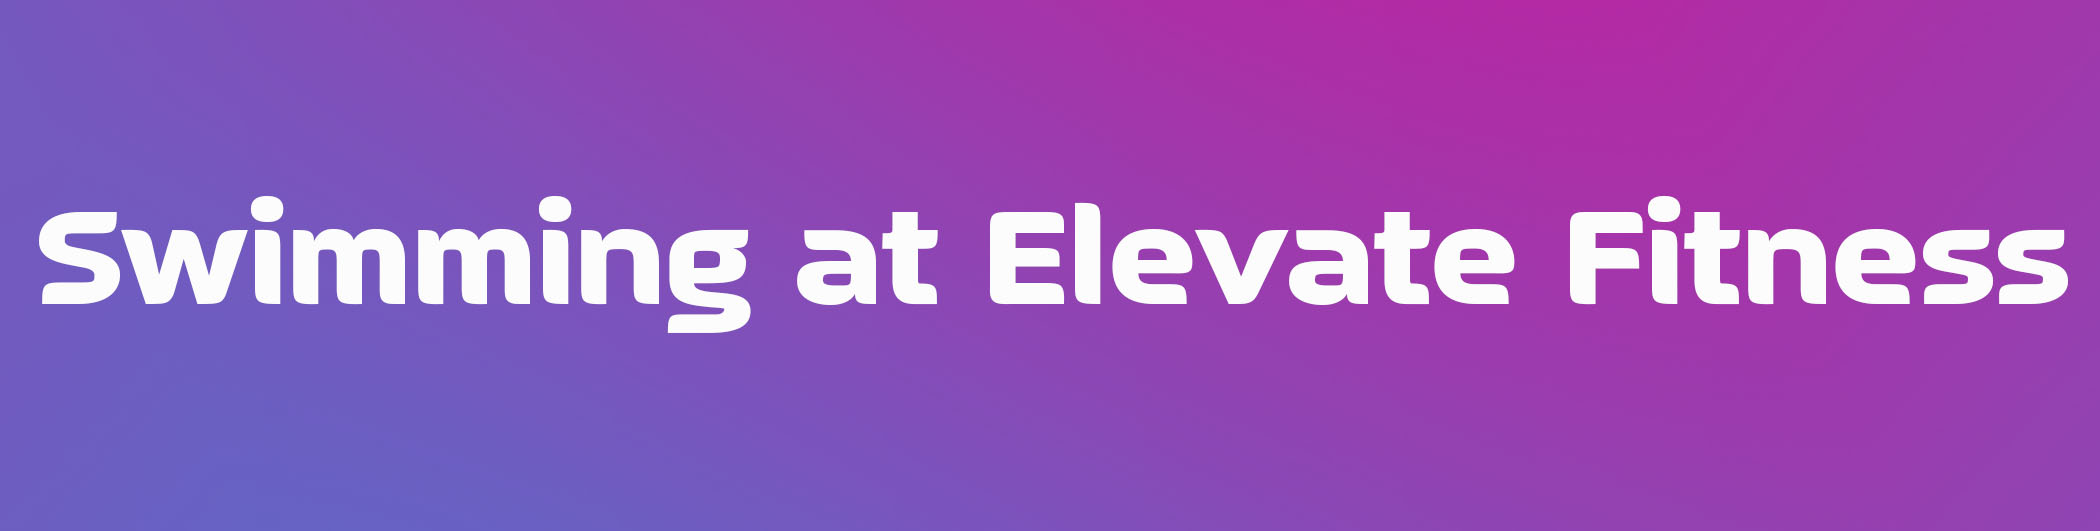 Swimming at Elevate Fitness Syracuse